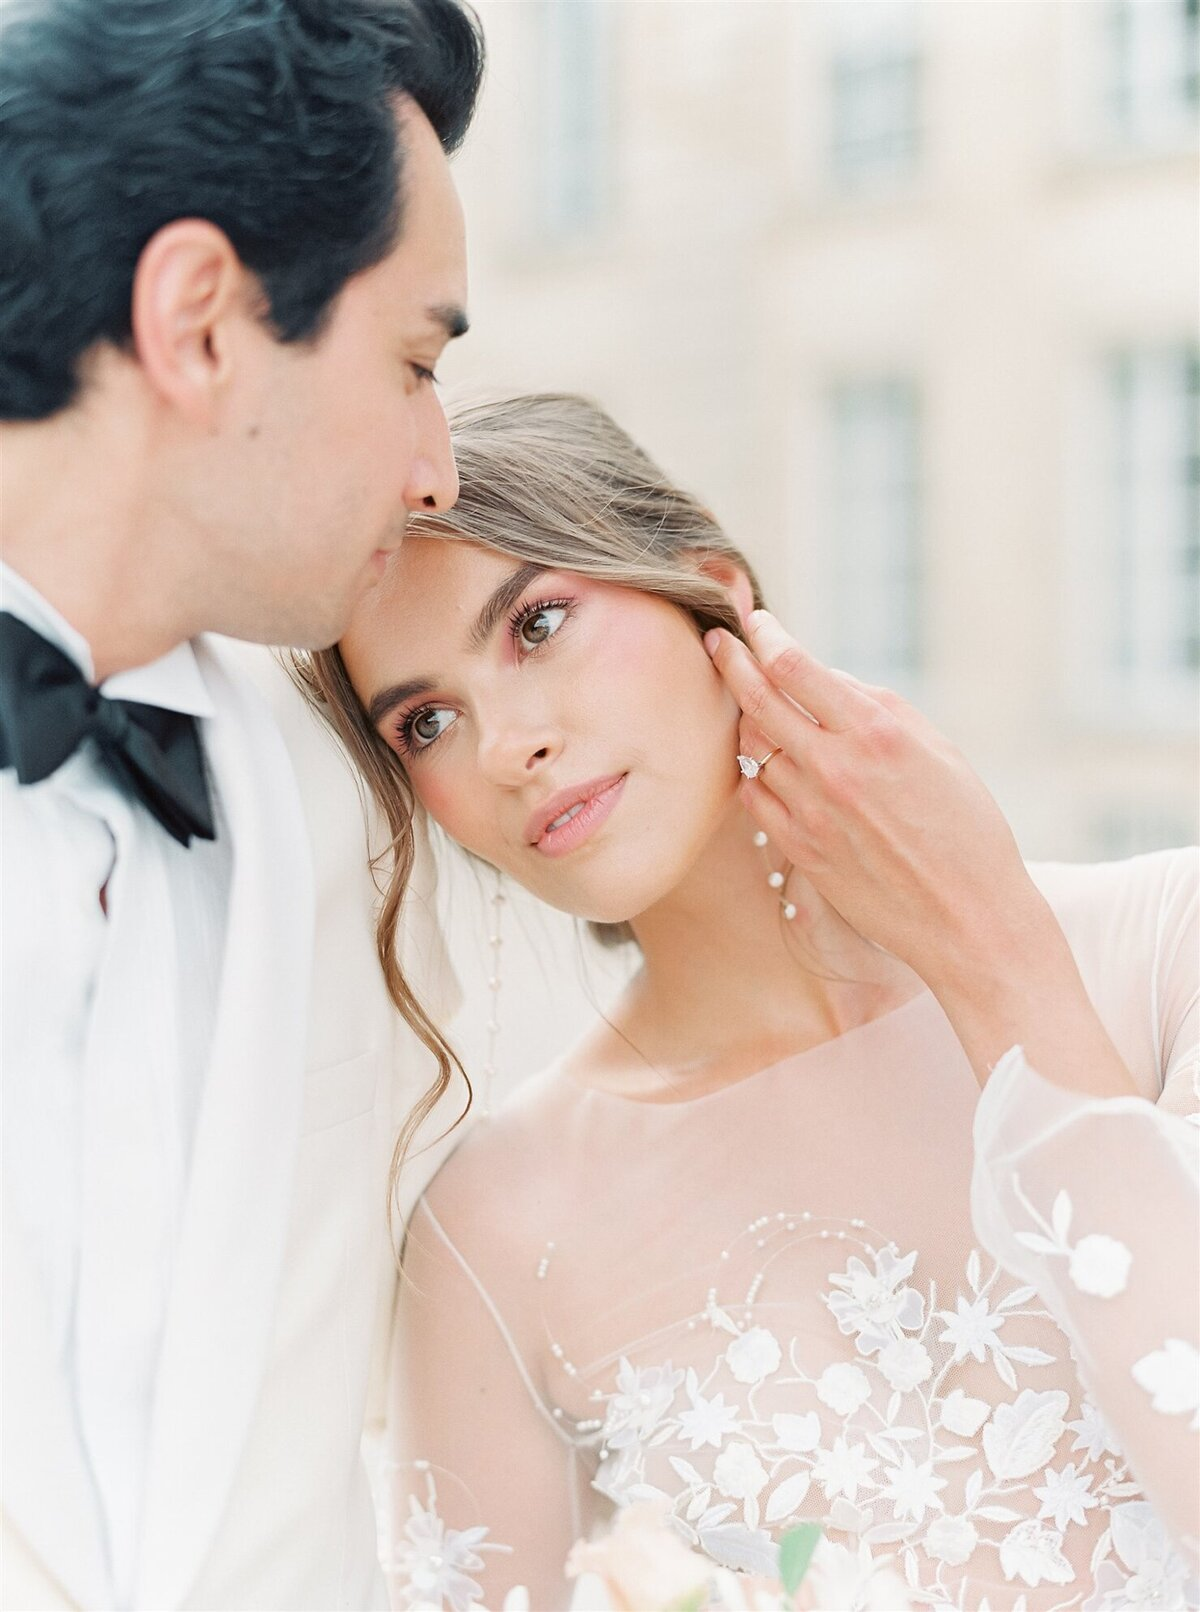 Lauren-Fair-Photography-Best-of-2019-Luxury-Film-Destination-Wedding-Photographer_0573